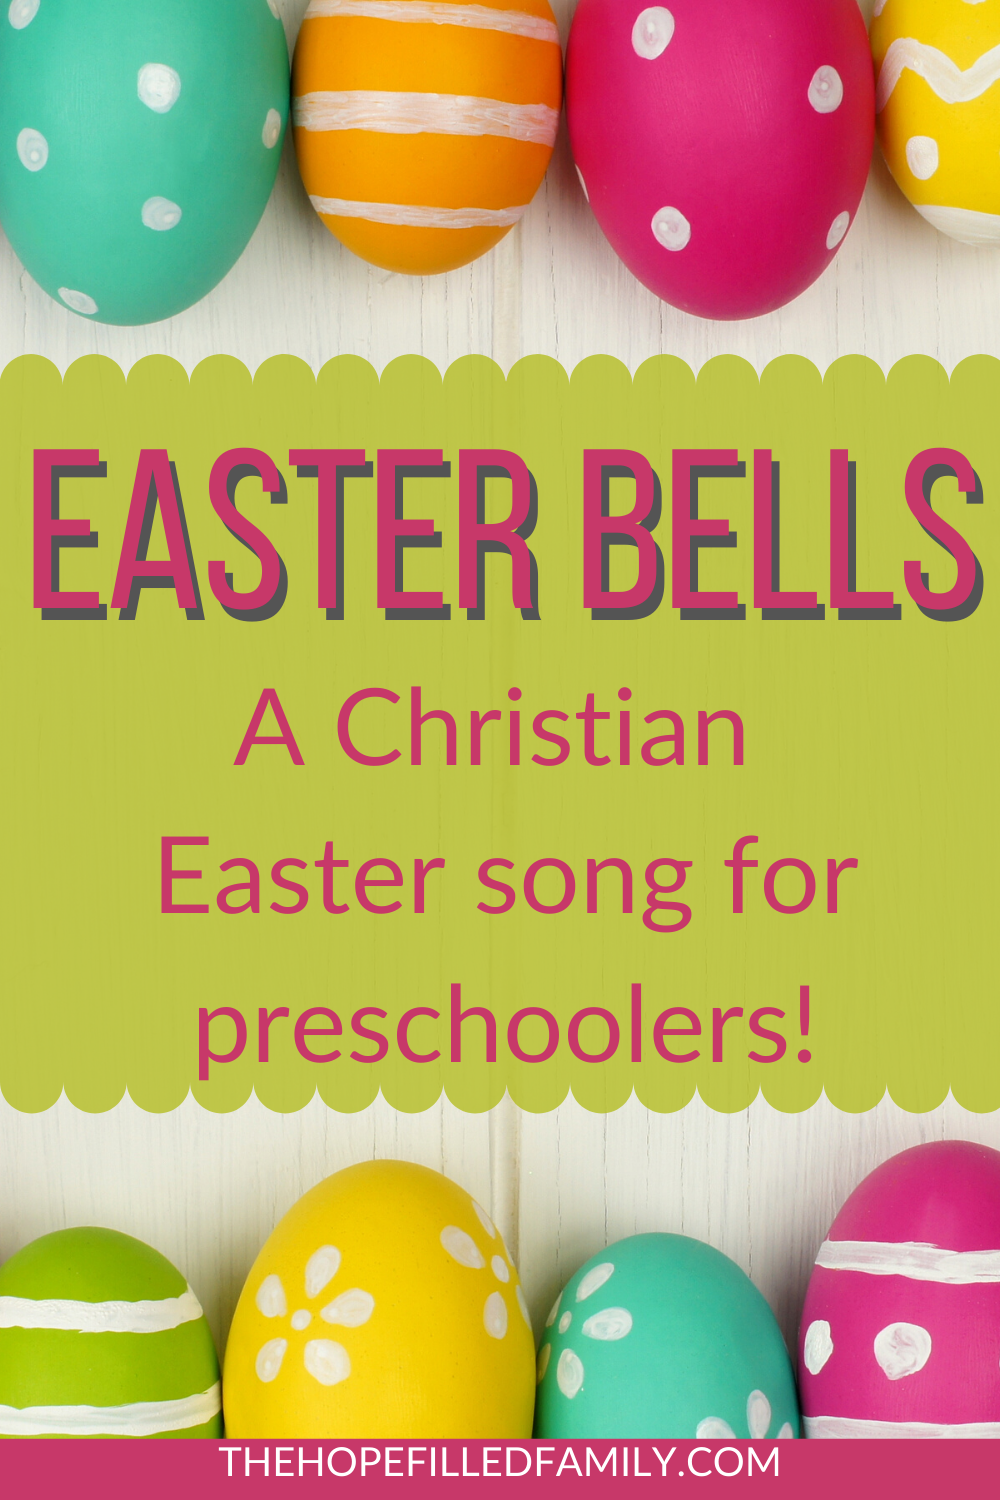 A Christian Easter song for preschoolers, Easter Bells.